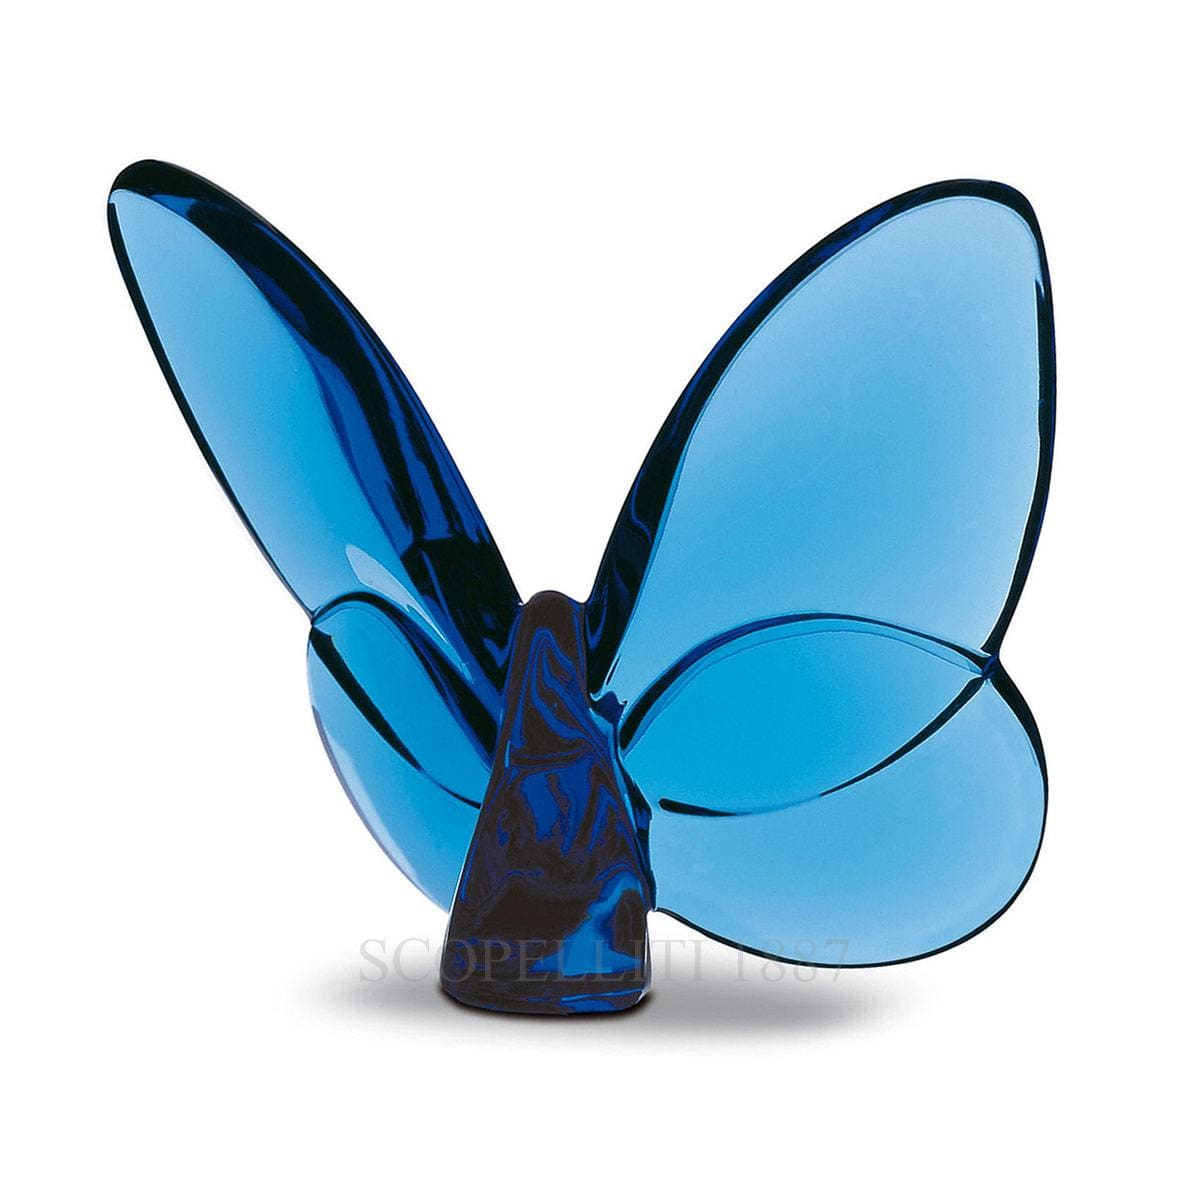 baccarat crystal french design blue porte bonheur butterfly